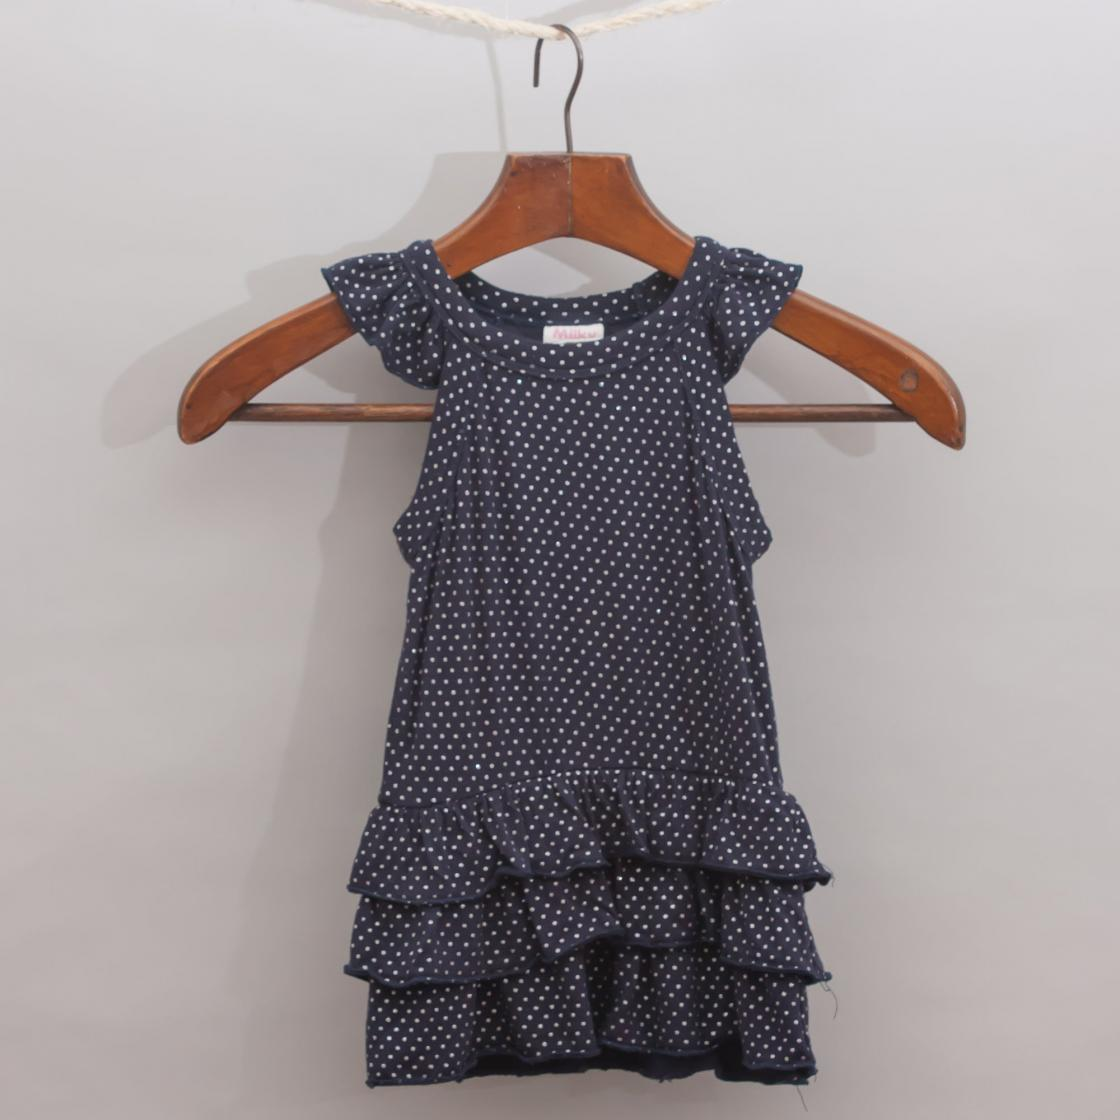 Milky Spotted Dress